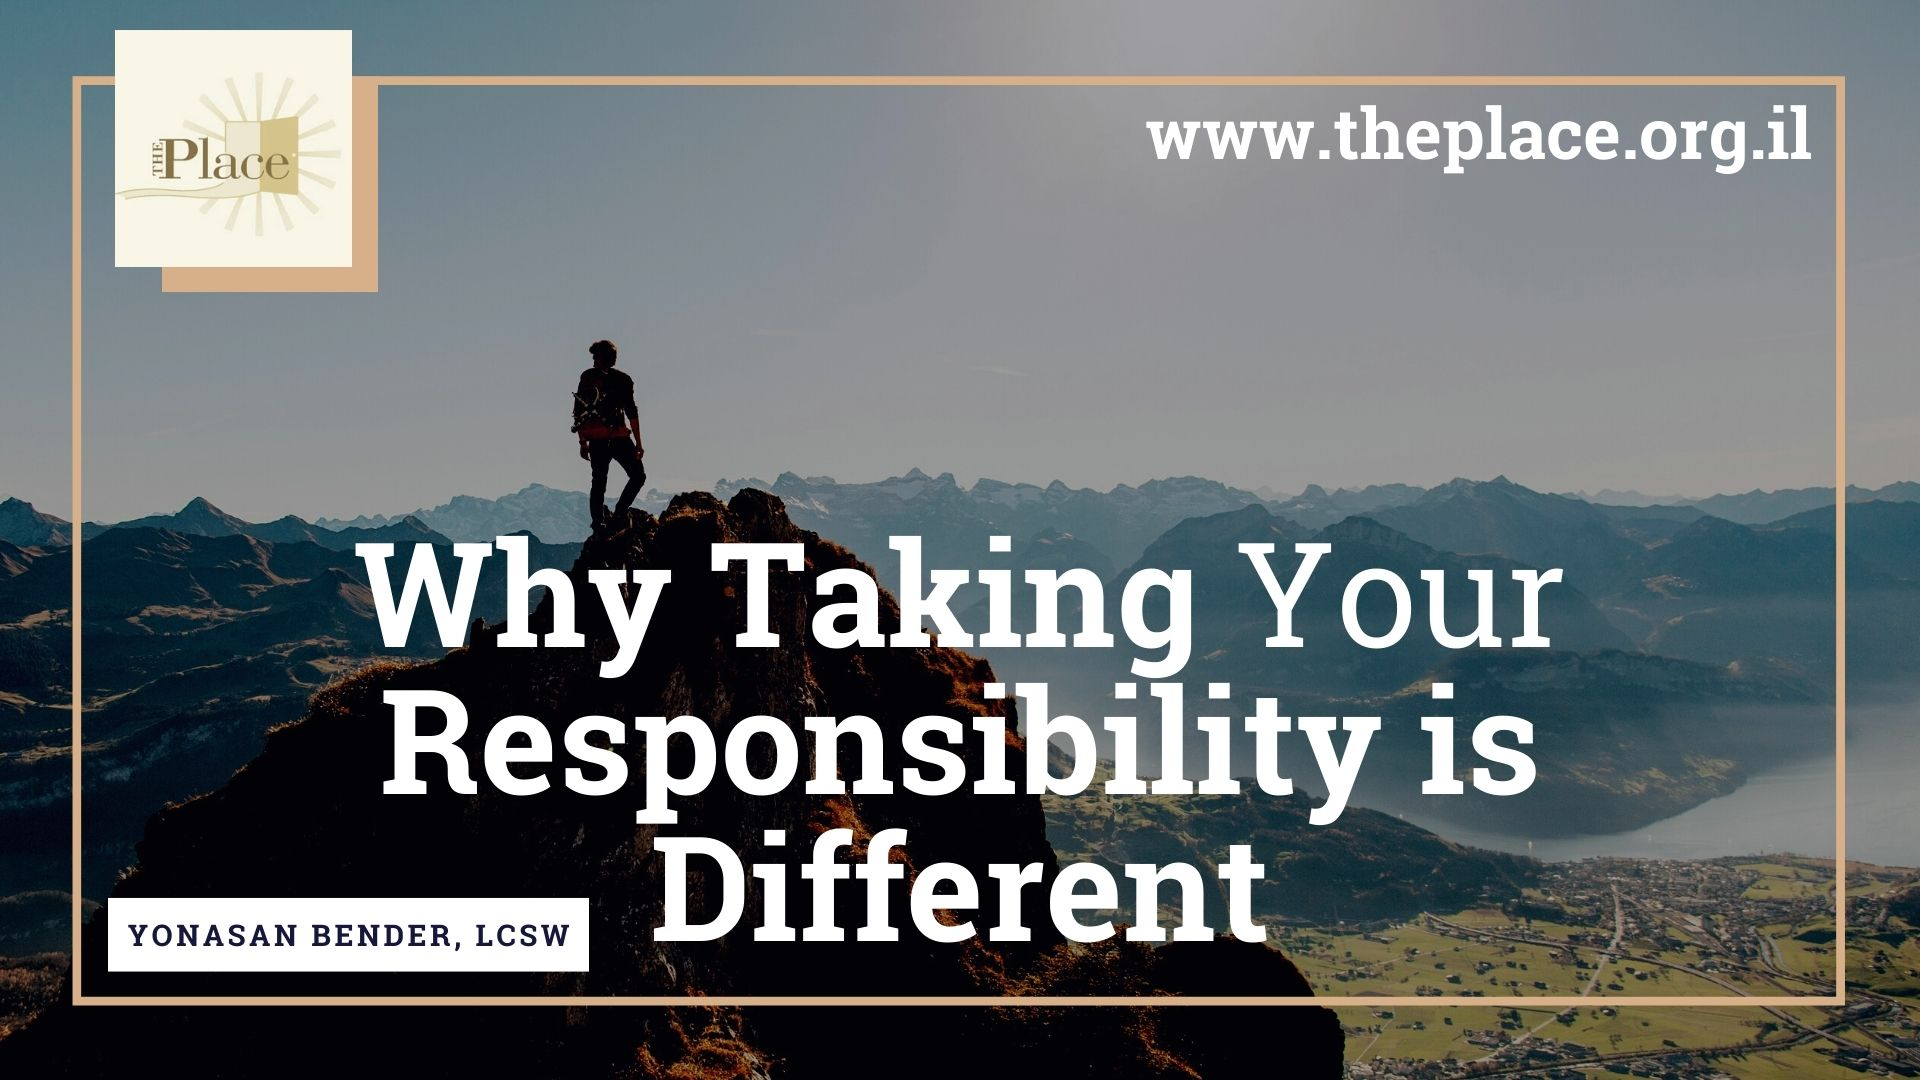 Why Taking Your Responsibility is Different